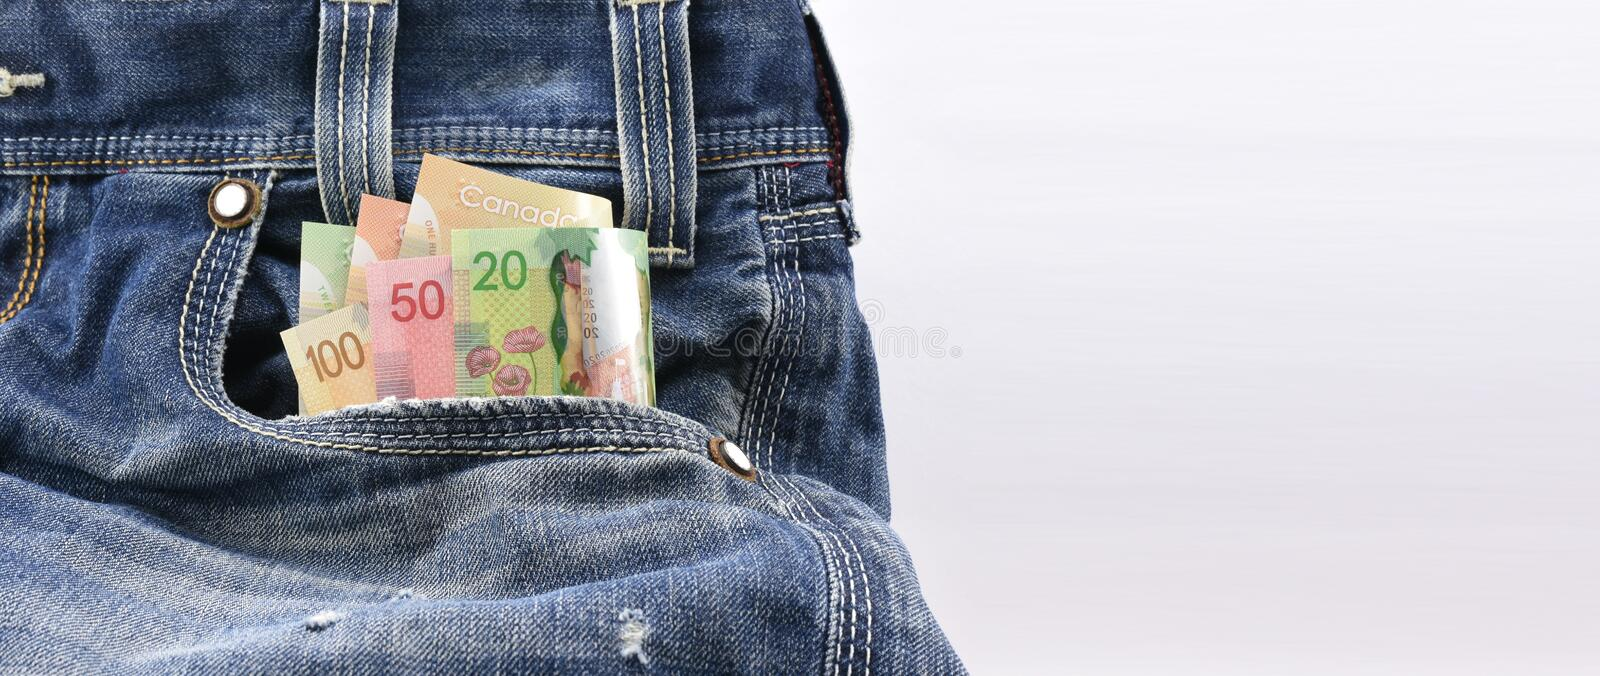 Canadian dollars of value 20, 50 and 100 in Blue Denim Jeans Pocket, Concept on earning money, saving money. Sales with ample empty space for text message on royalty free stock photos